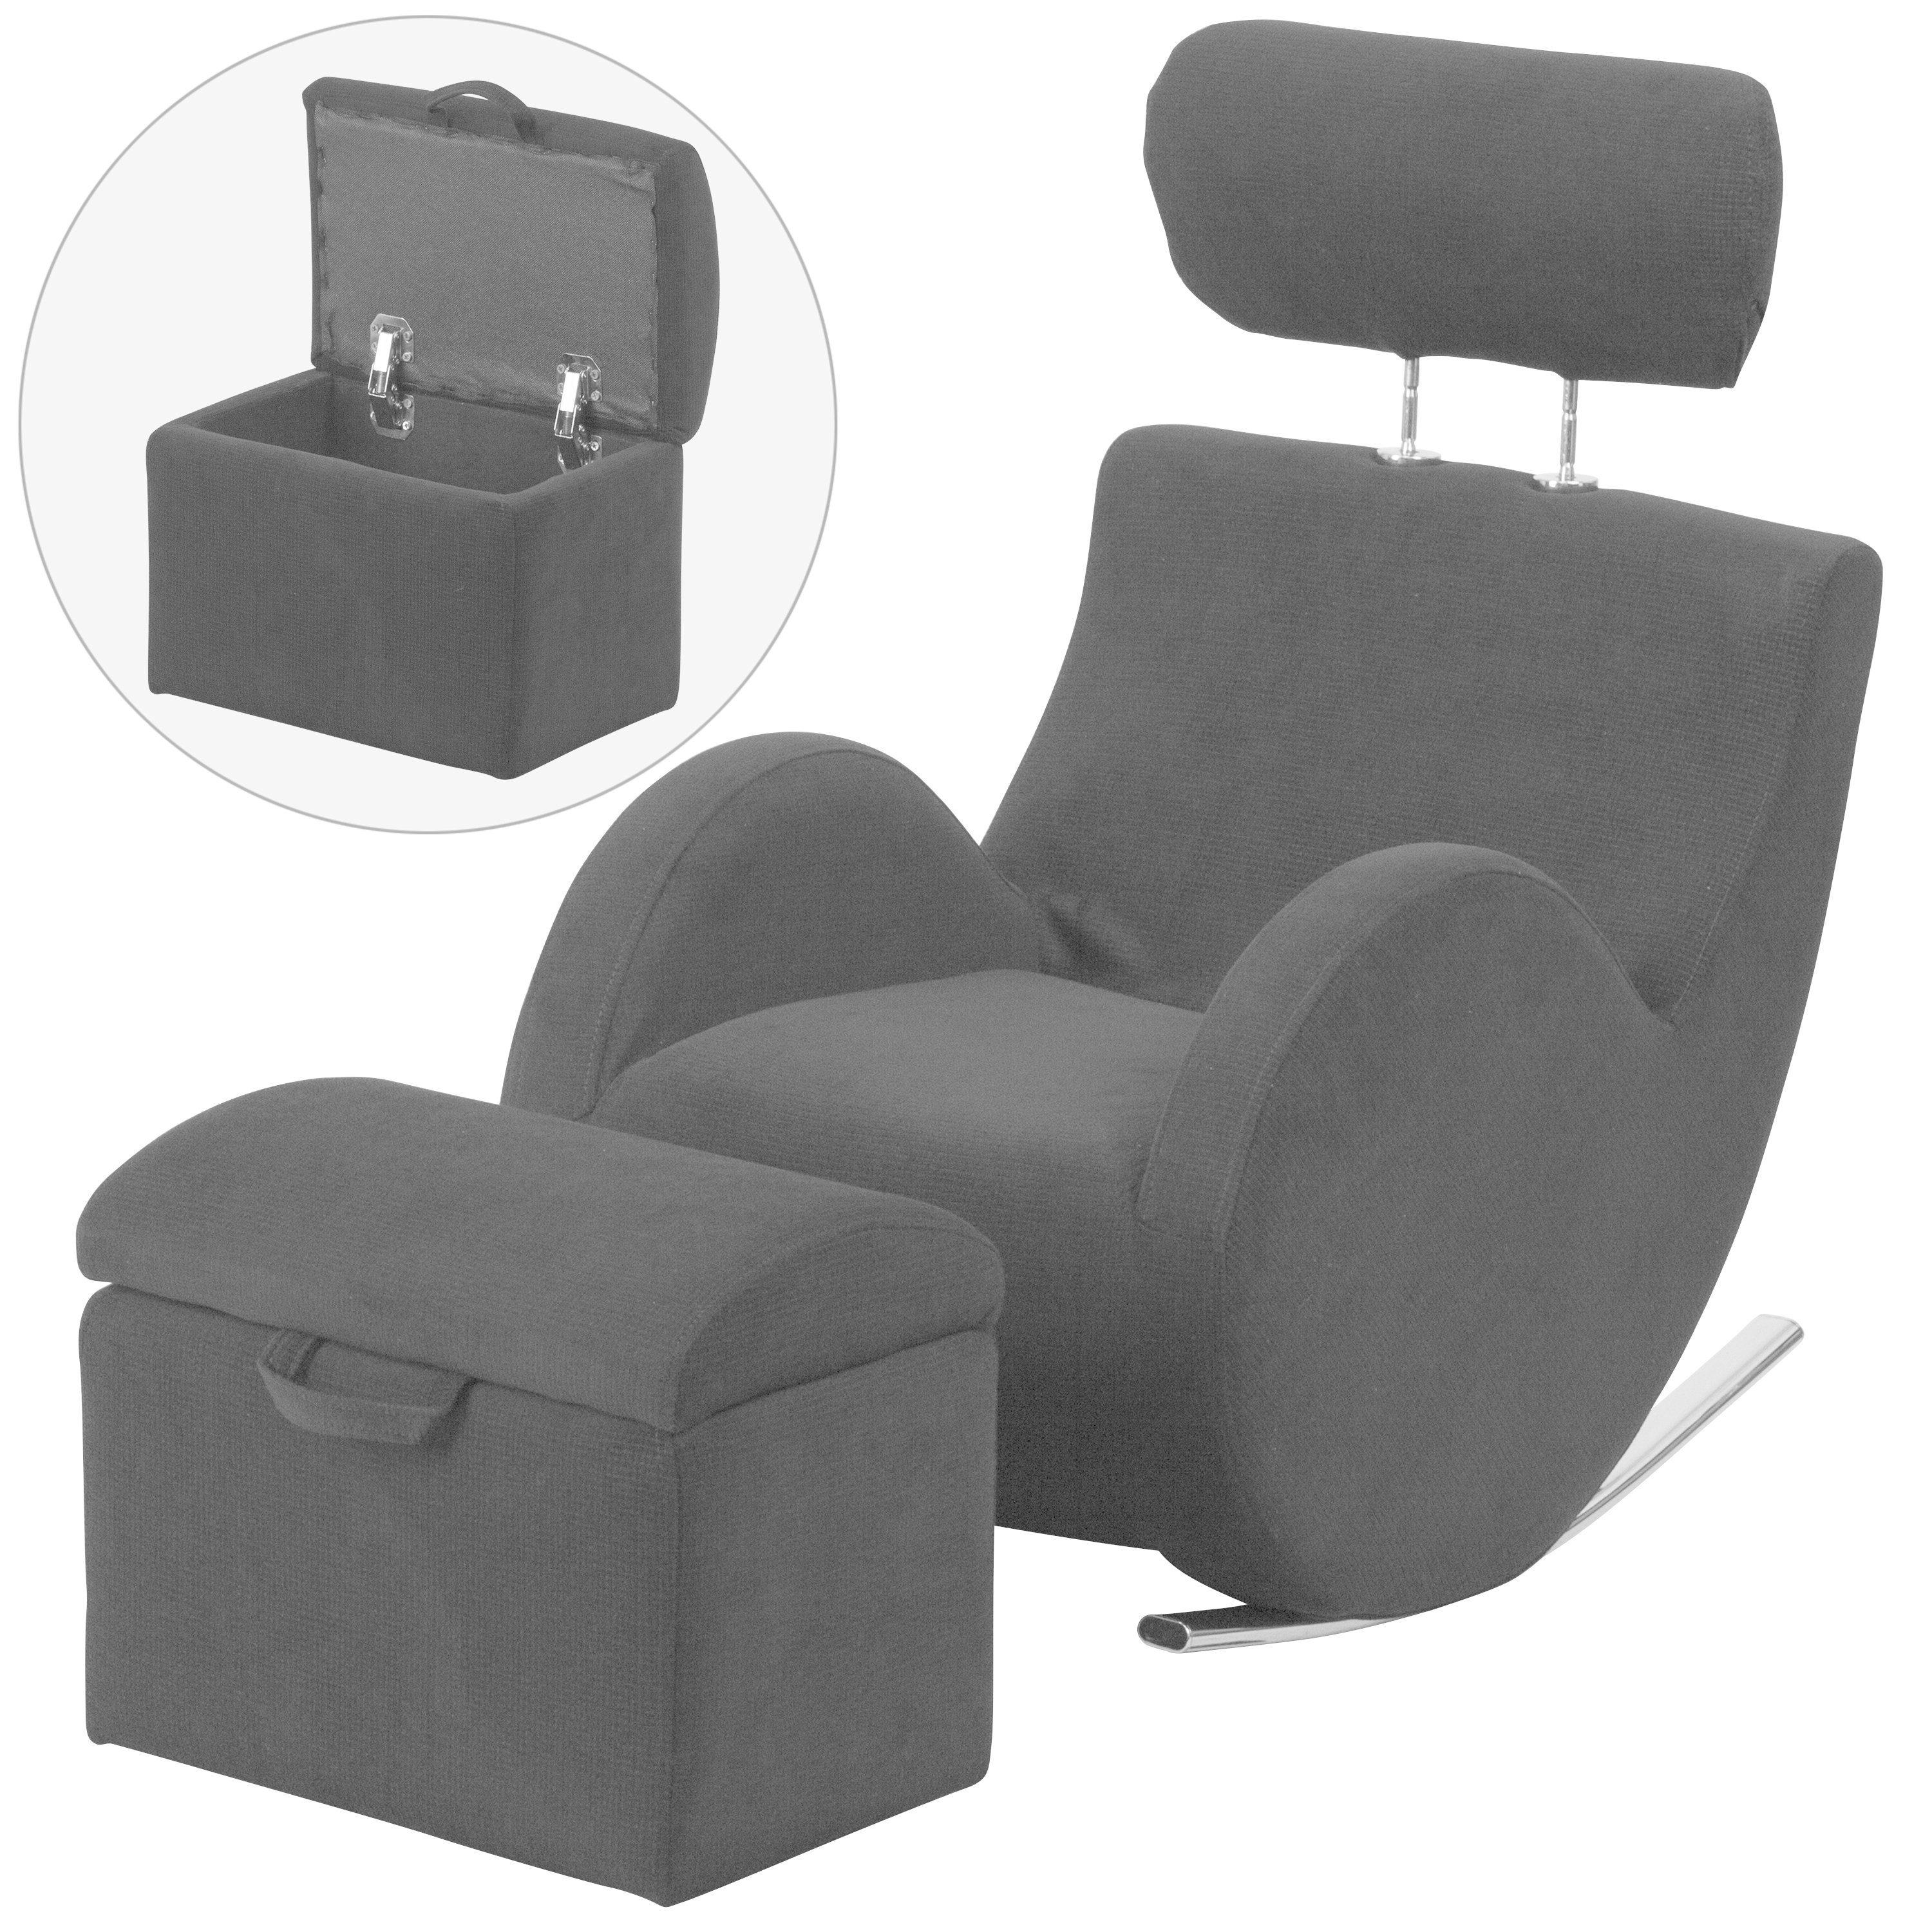 Best And Newest Shop Hercules Kids Rocking Chair And Storage Ottoman Set – Free With Regard To Hercules Grey Swivel Glider Recliners (Gallery 15 of 20)